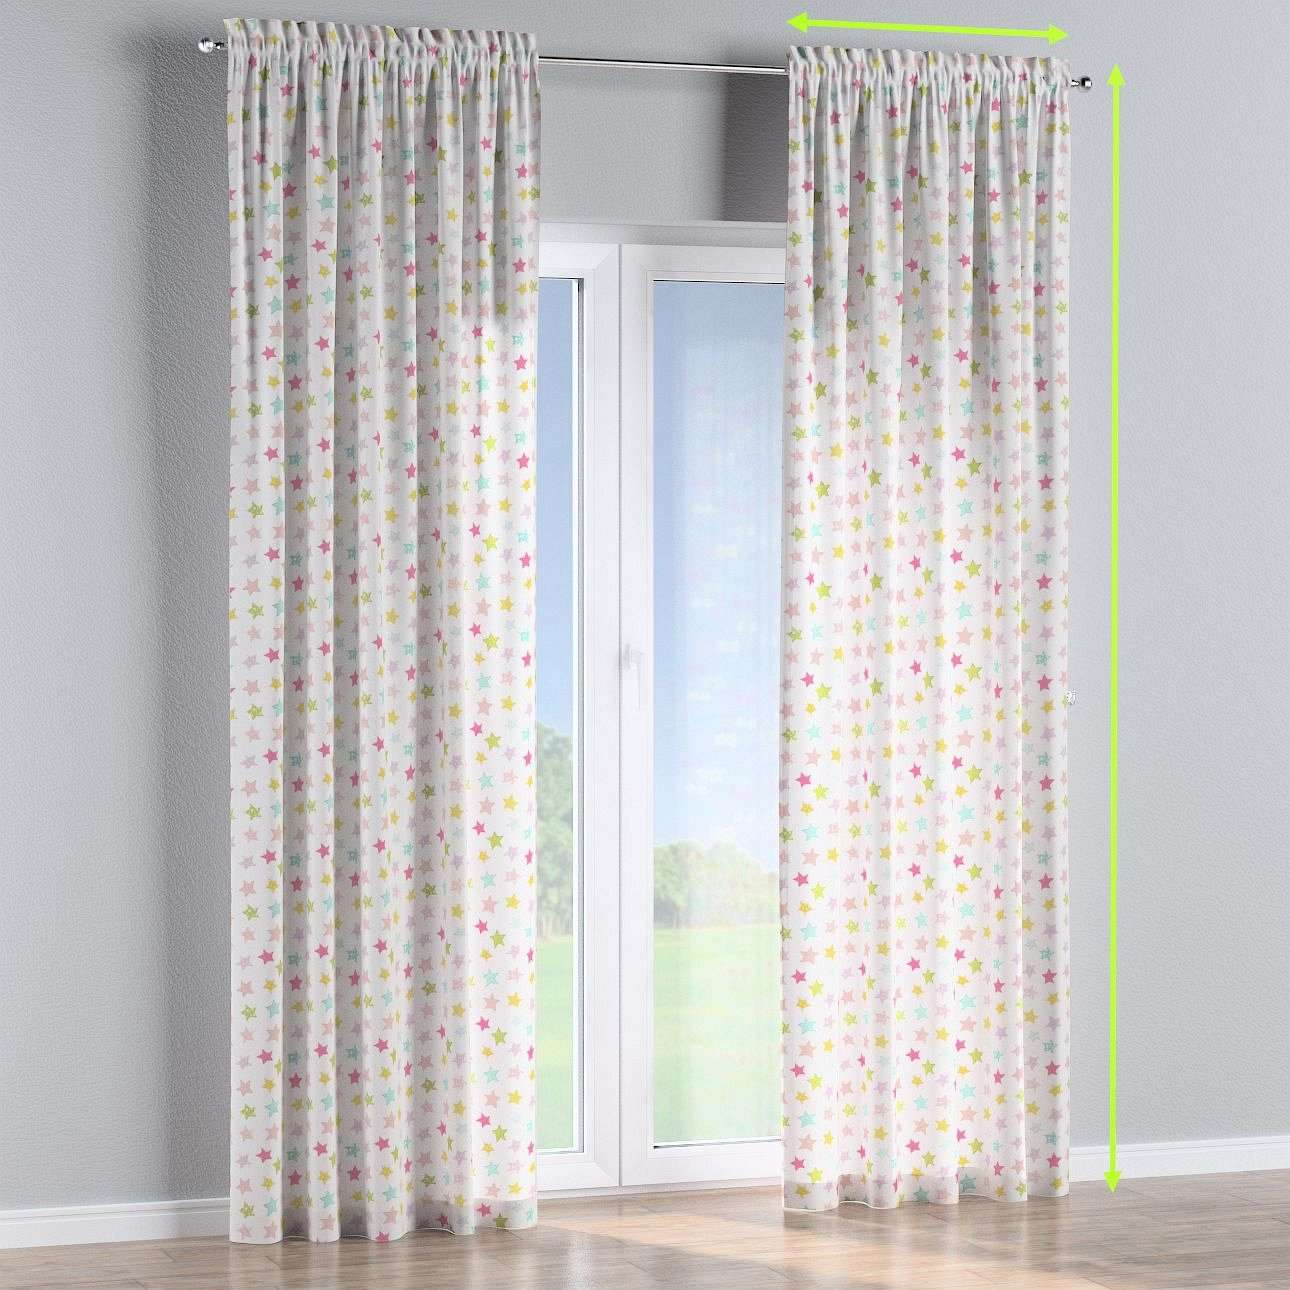 Slot and frill lined curtains in collection Little World, fabric: 141-52